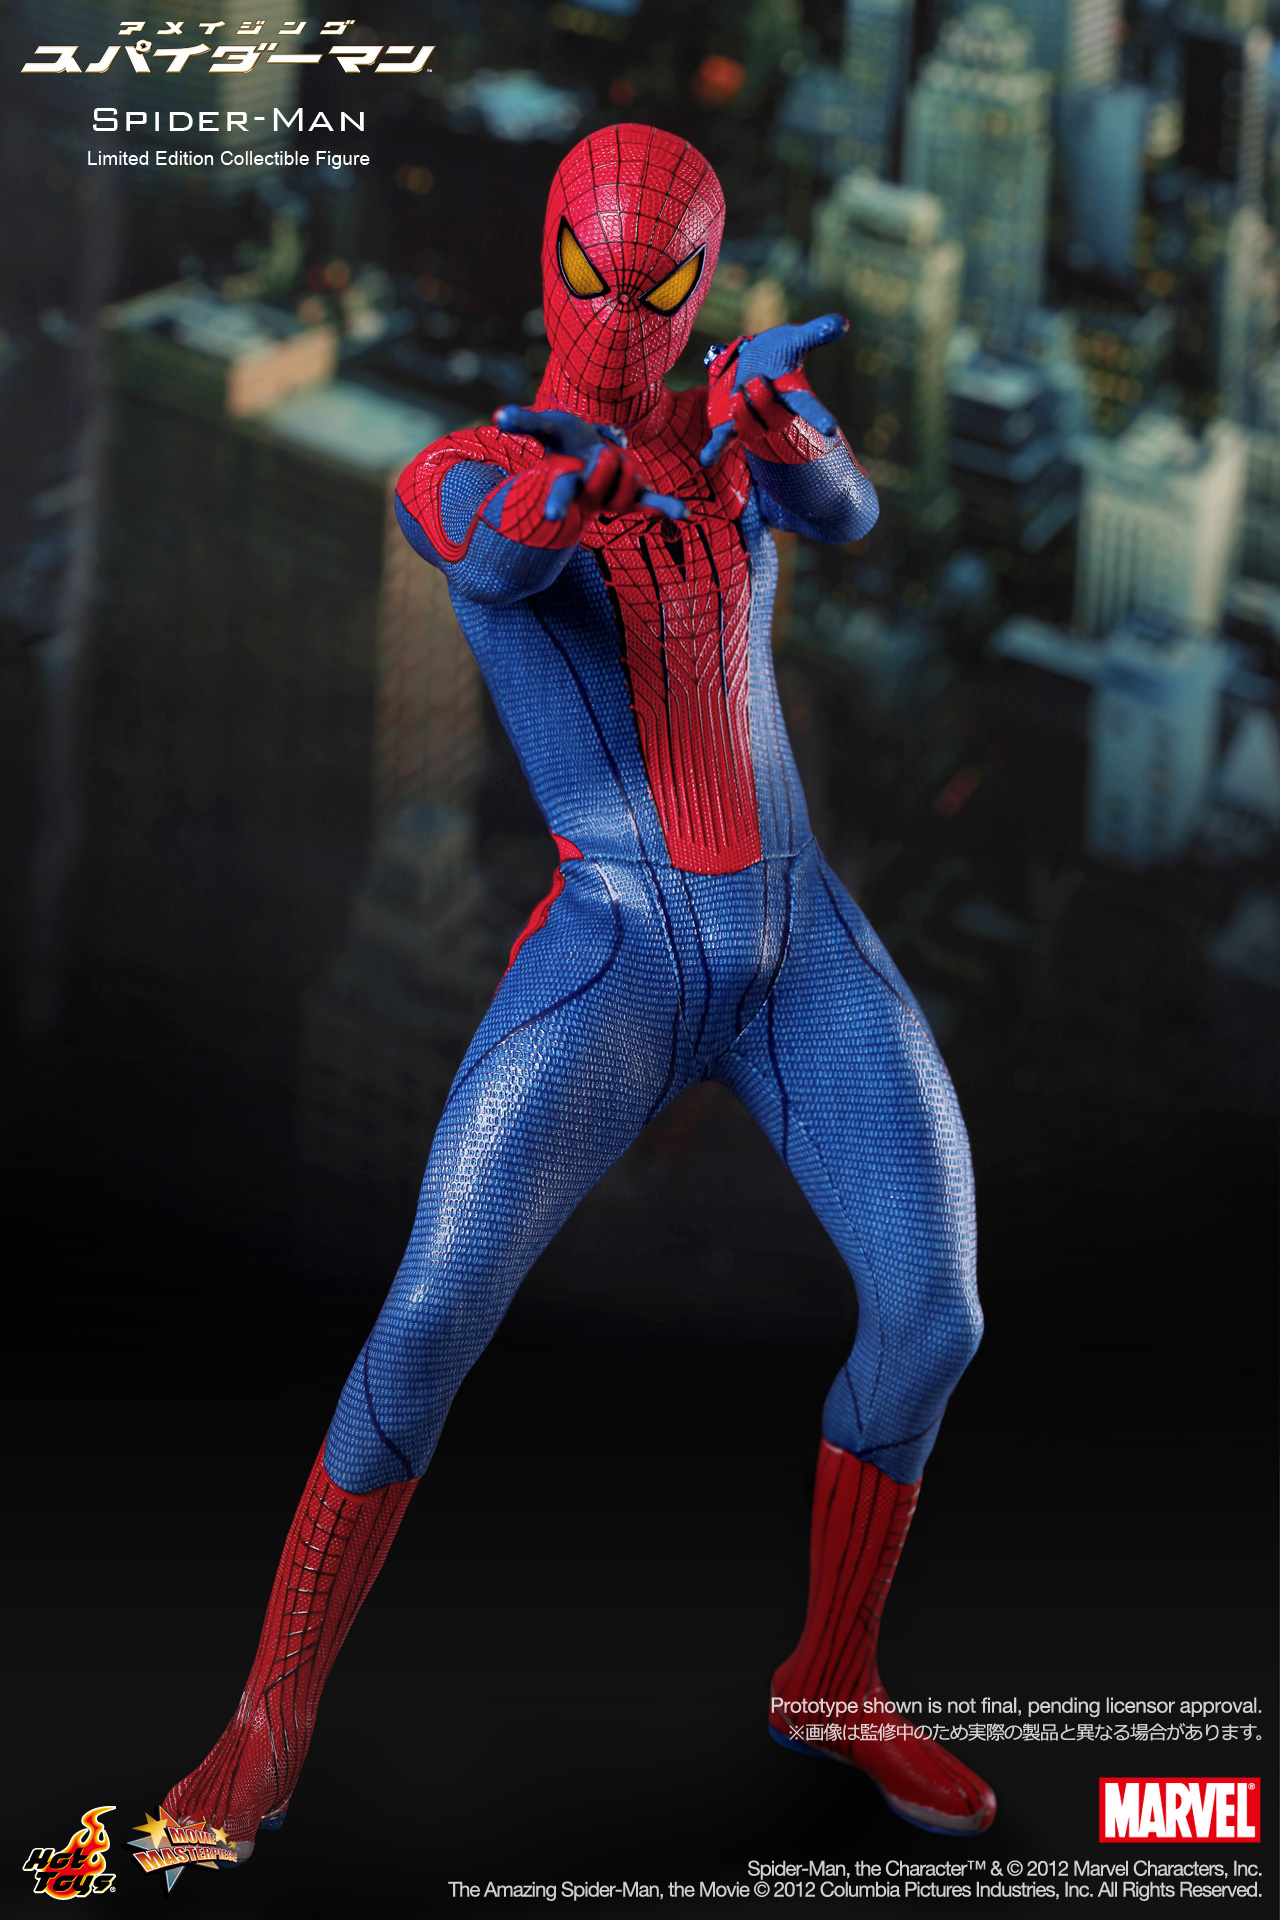 Thread: Hot Toys - MMS179 - The Amazing Spider-Man: 1/6th scale Spider-Man